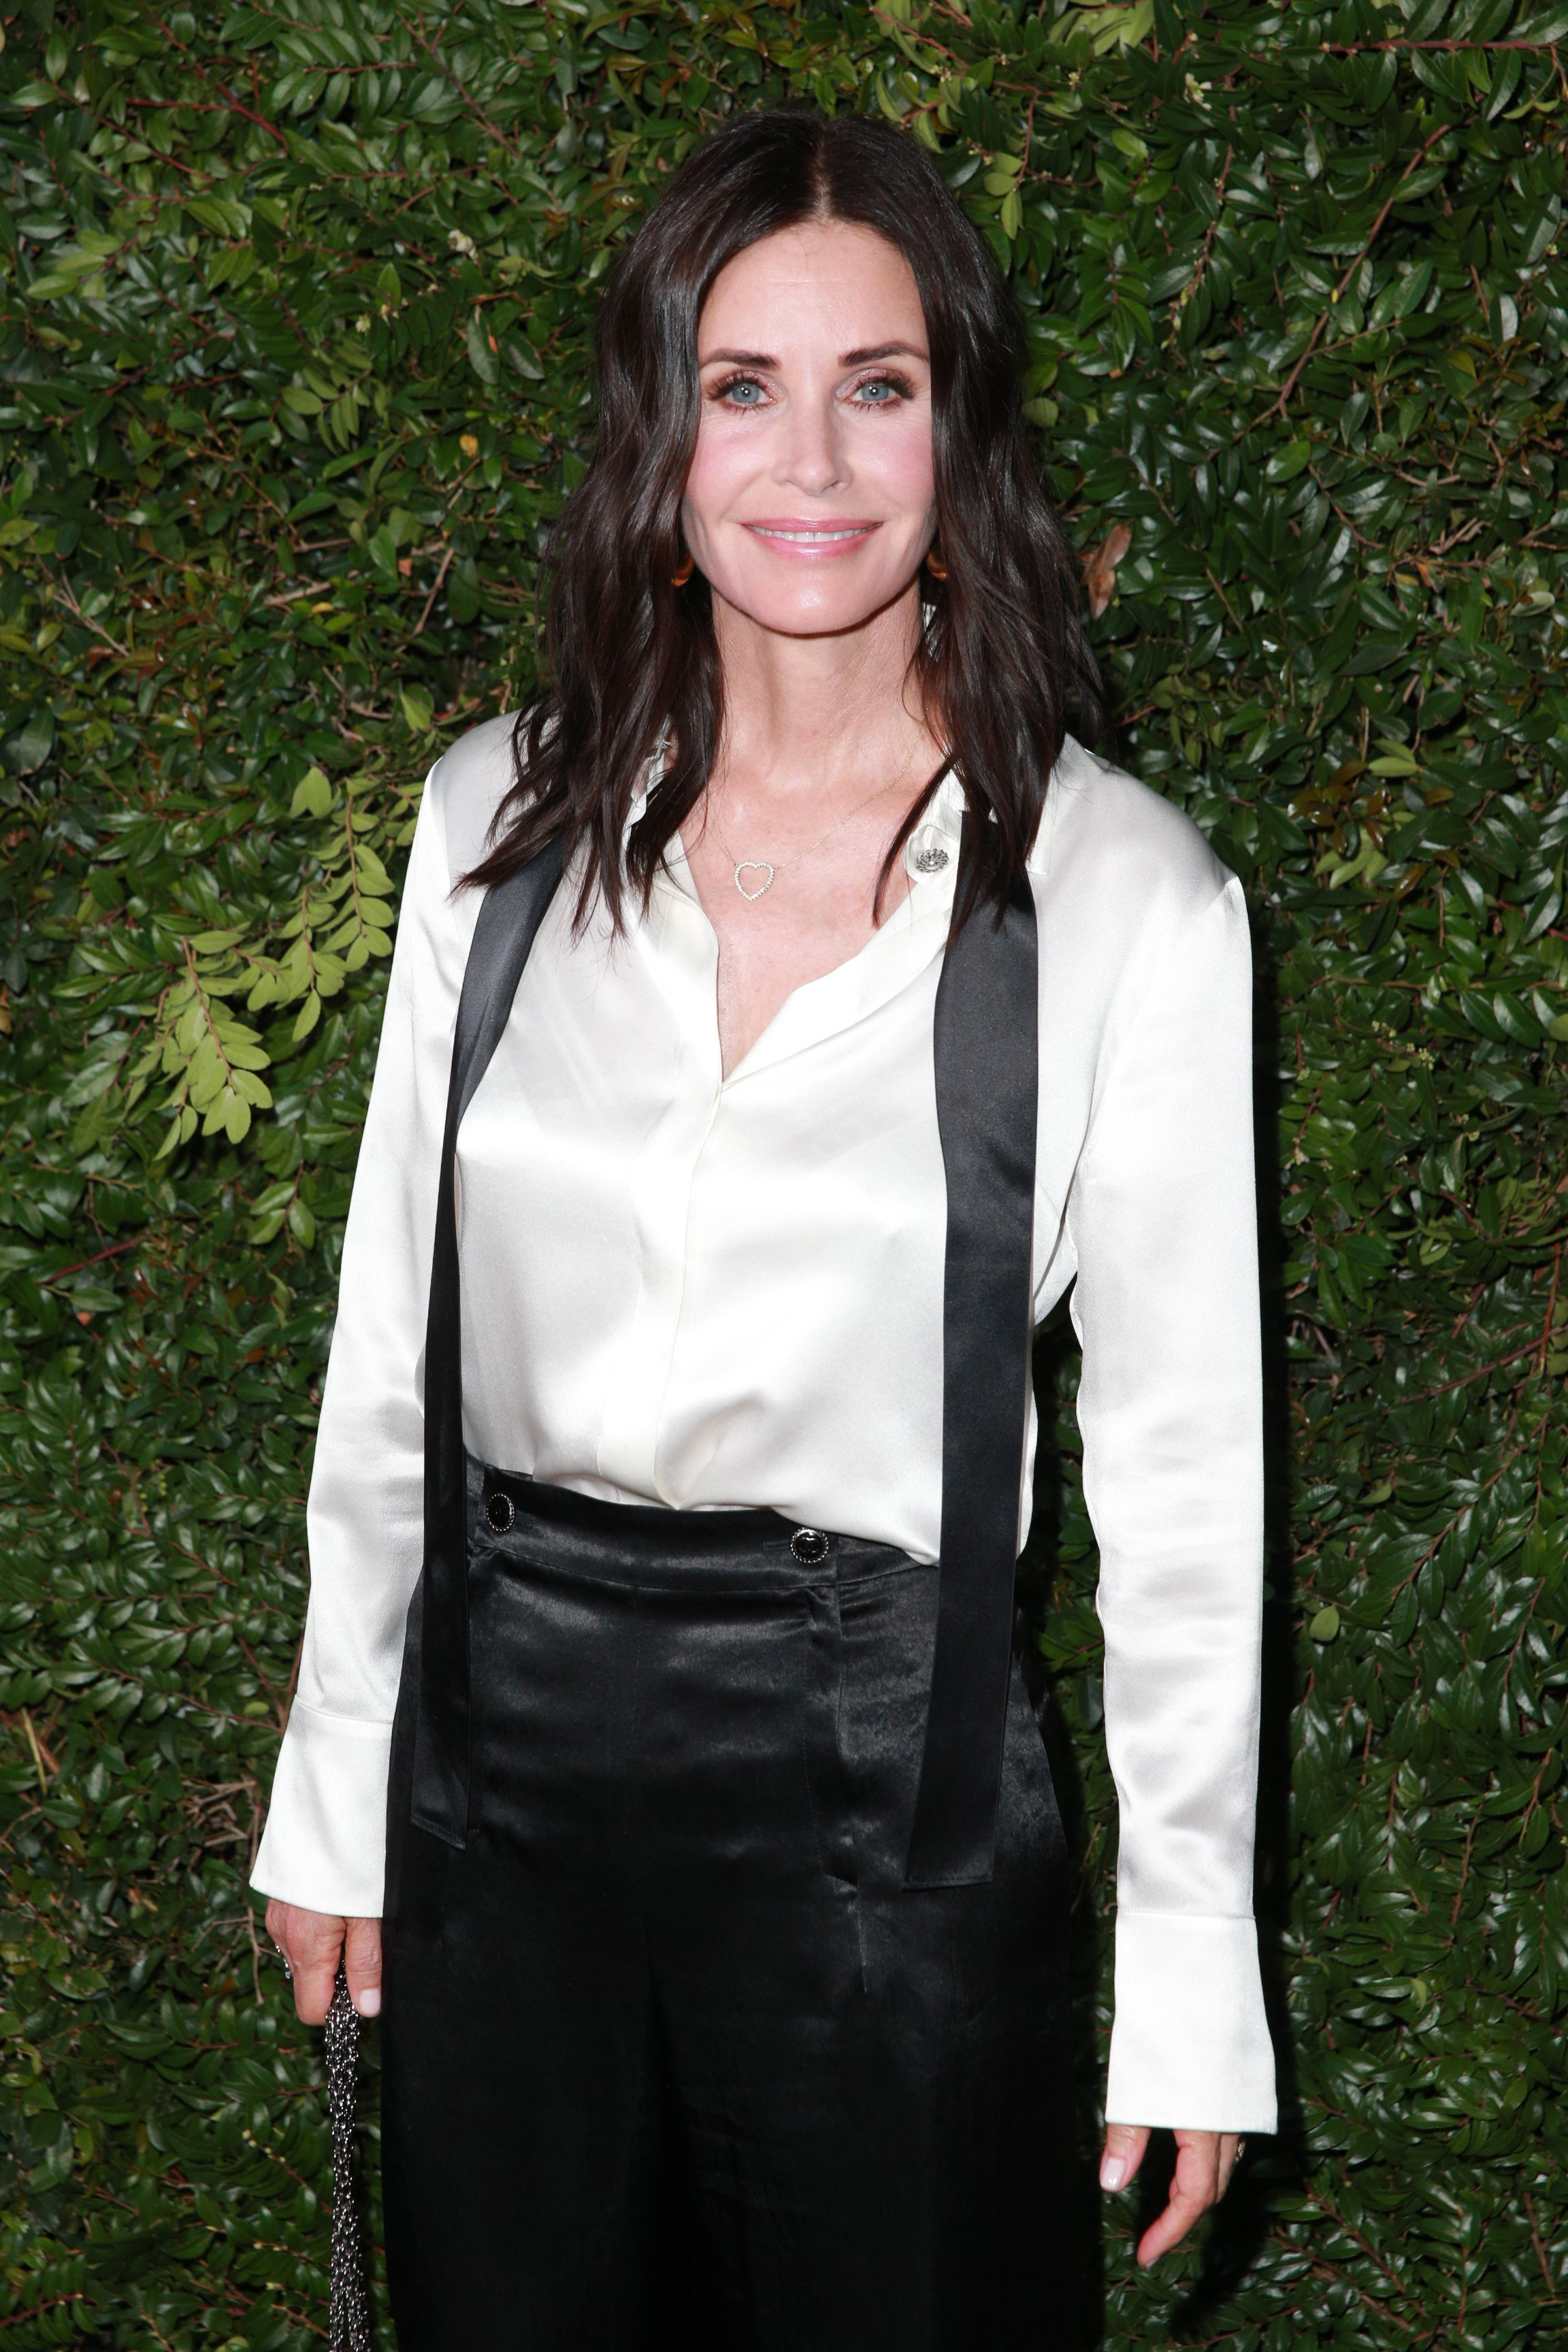 Courteney Cox attends the CHANEL Dinner Celebrating Our Majestic Oceans on June 2, 2018, in Malibu, California.   Source: Getty Images.